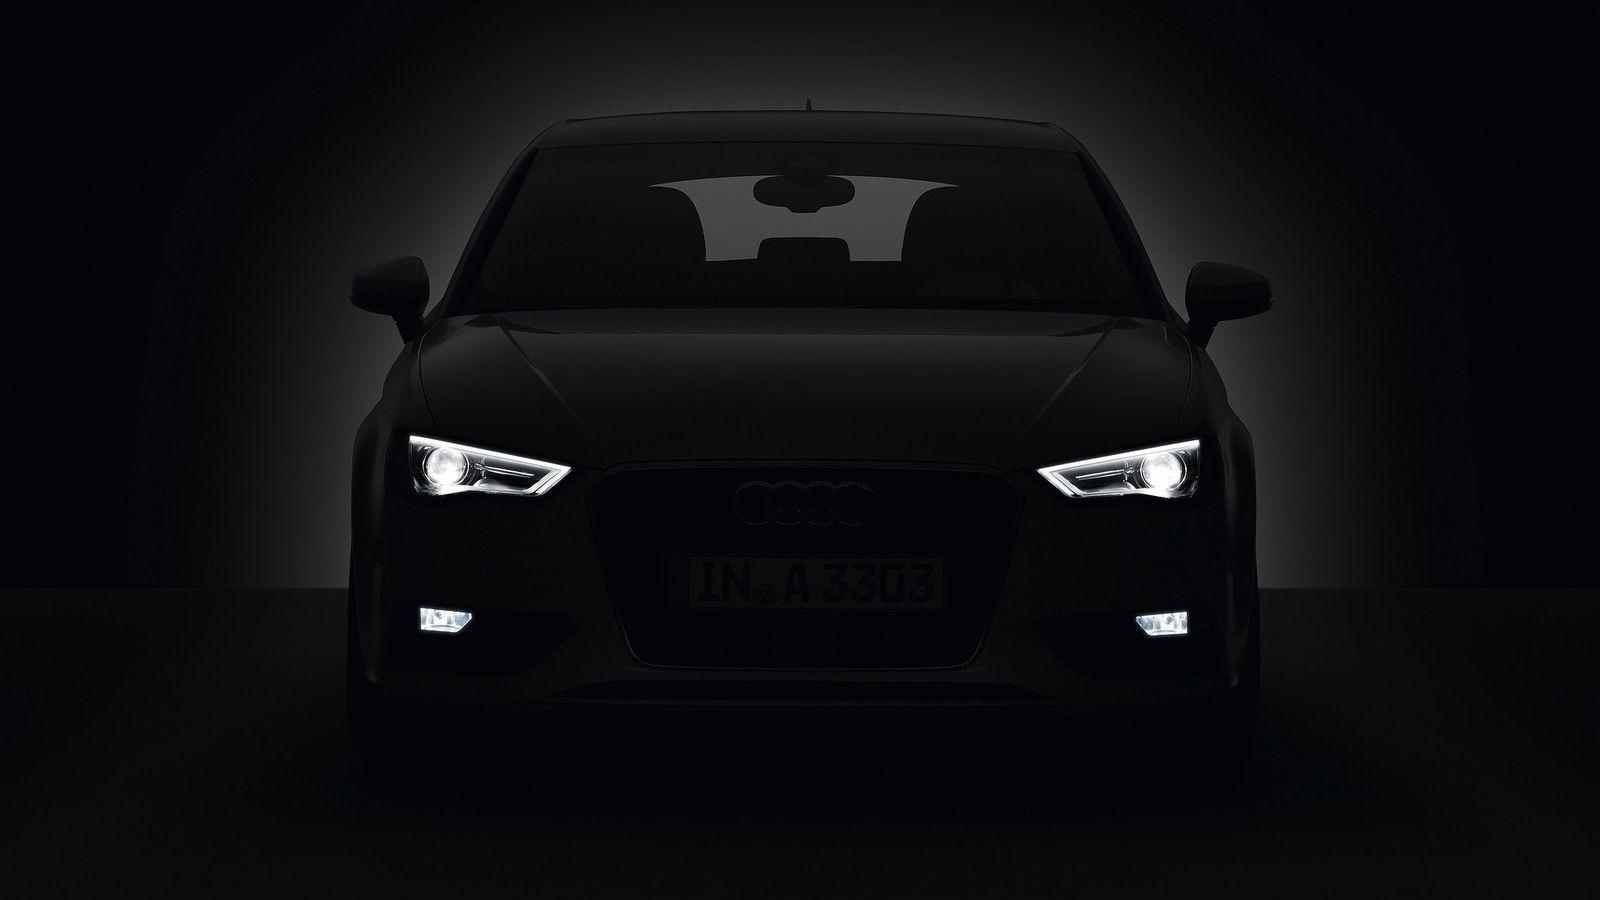 Audi Black And White Wallpapers Top Free Audi Black And